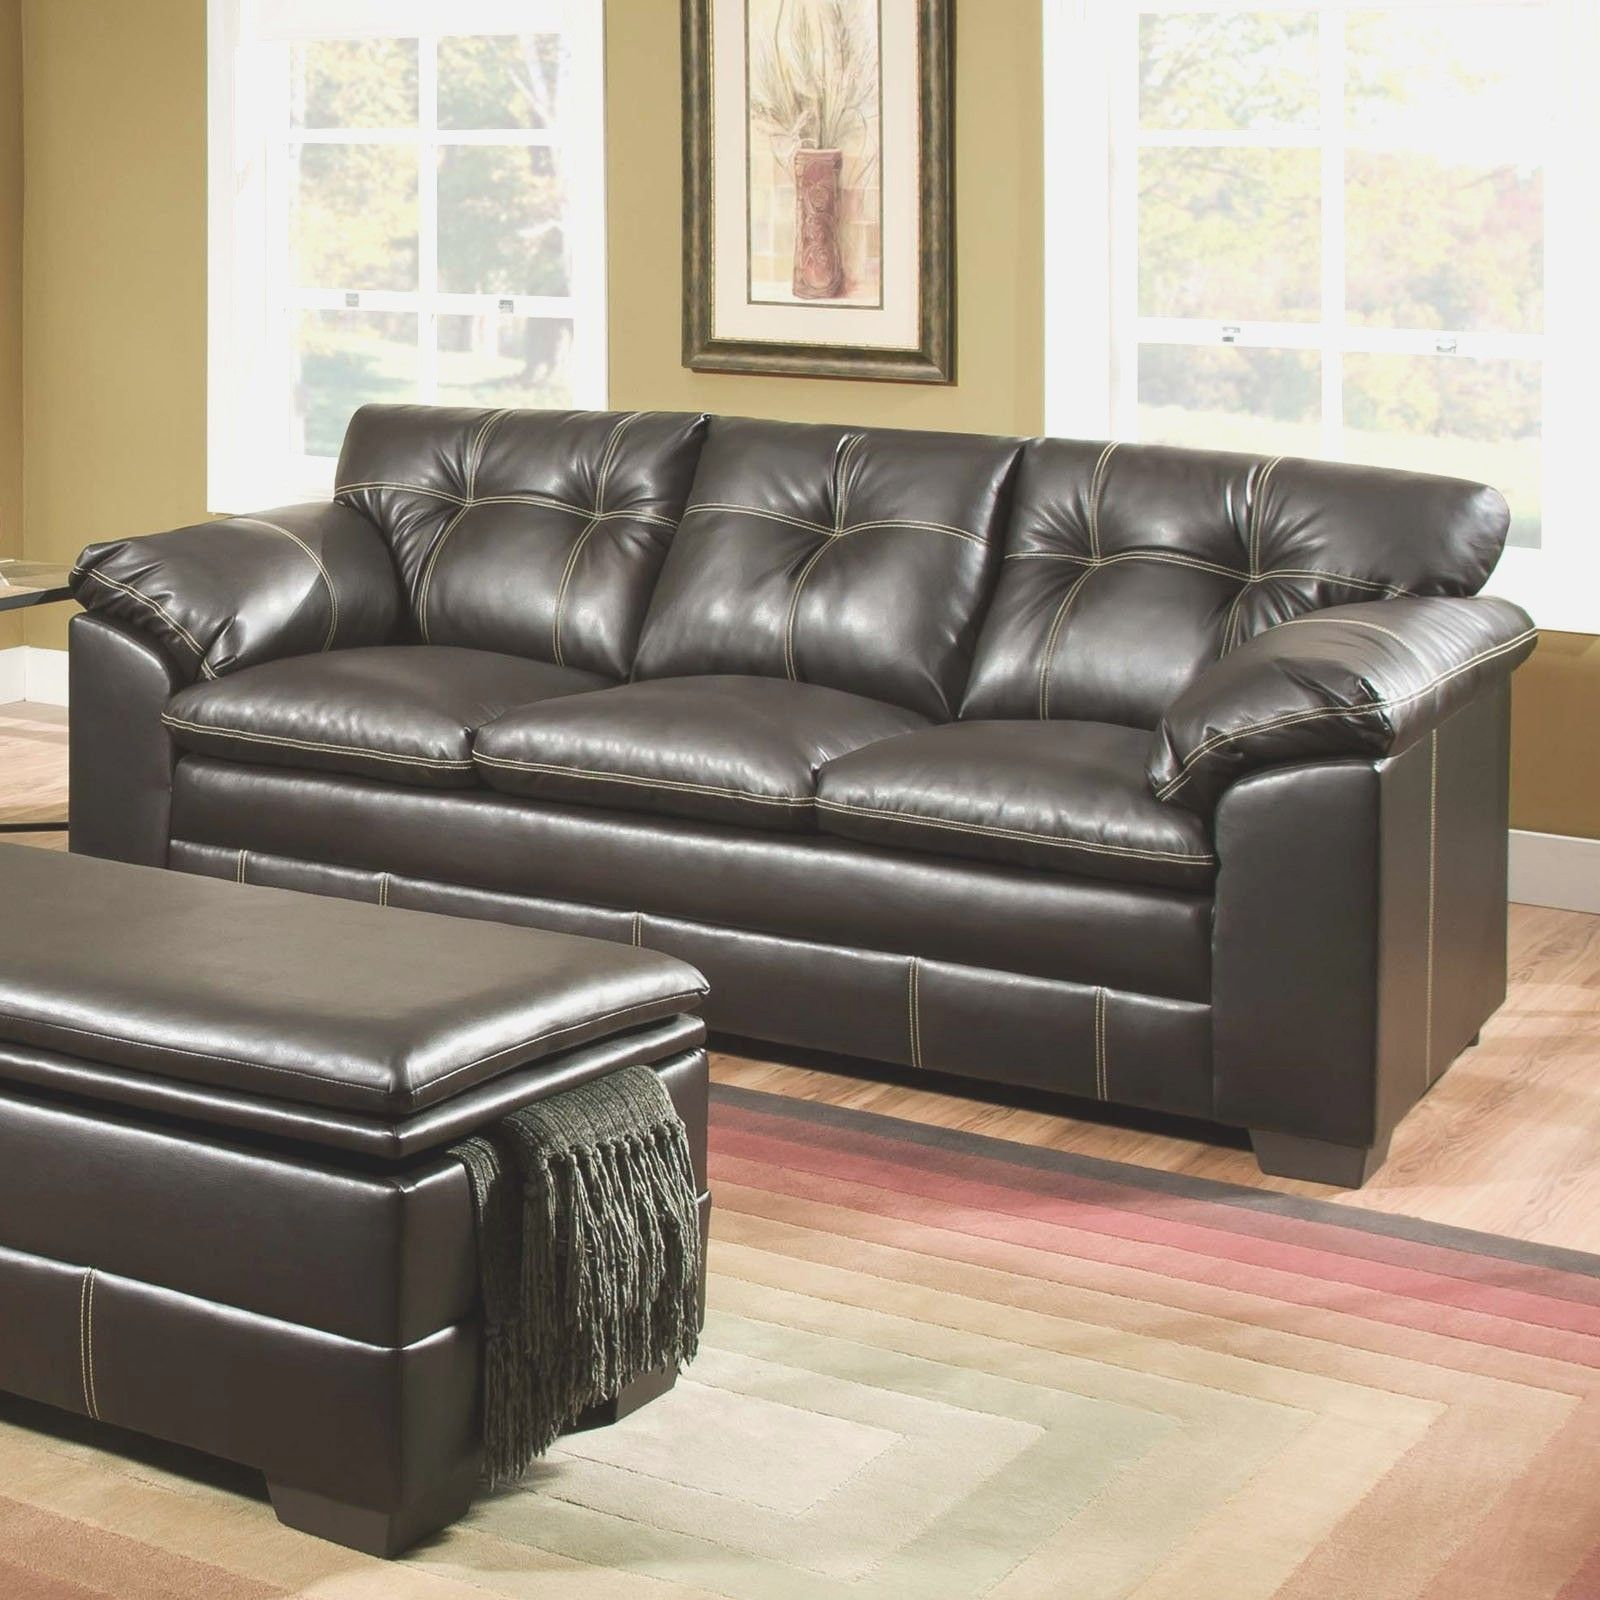 Big Lots Sofa Sleeper   Big Lots Furniture Sleeper Sofa, Big Lots Futon Sofa  Bed, Big Lots Leather Sofa Sleeper, Big Lots Queen Sleeper Sofa, Big Lots  Sofa ...